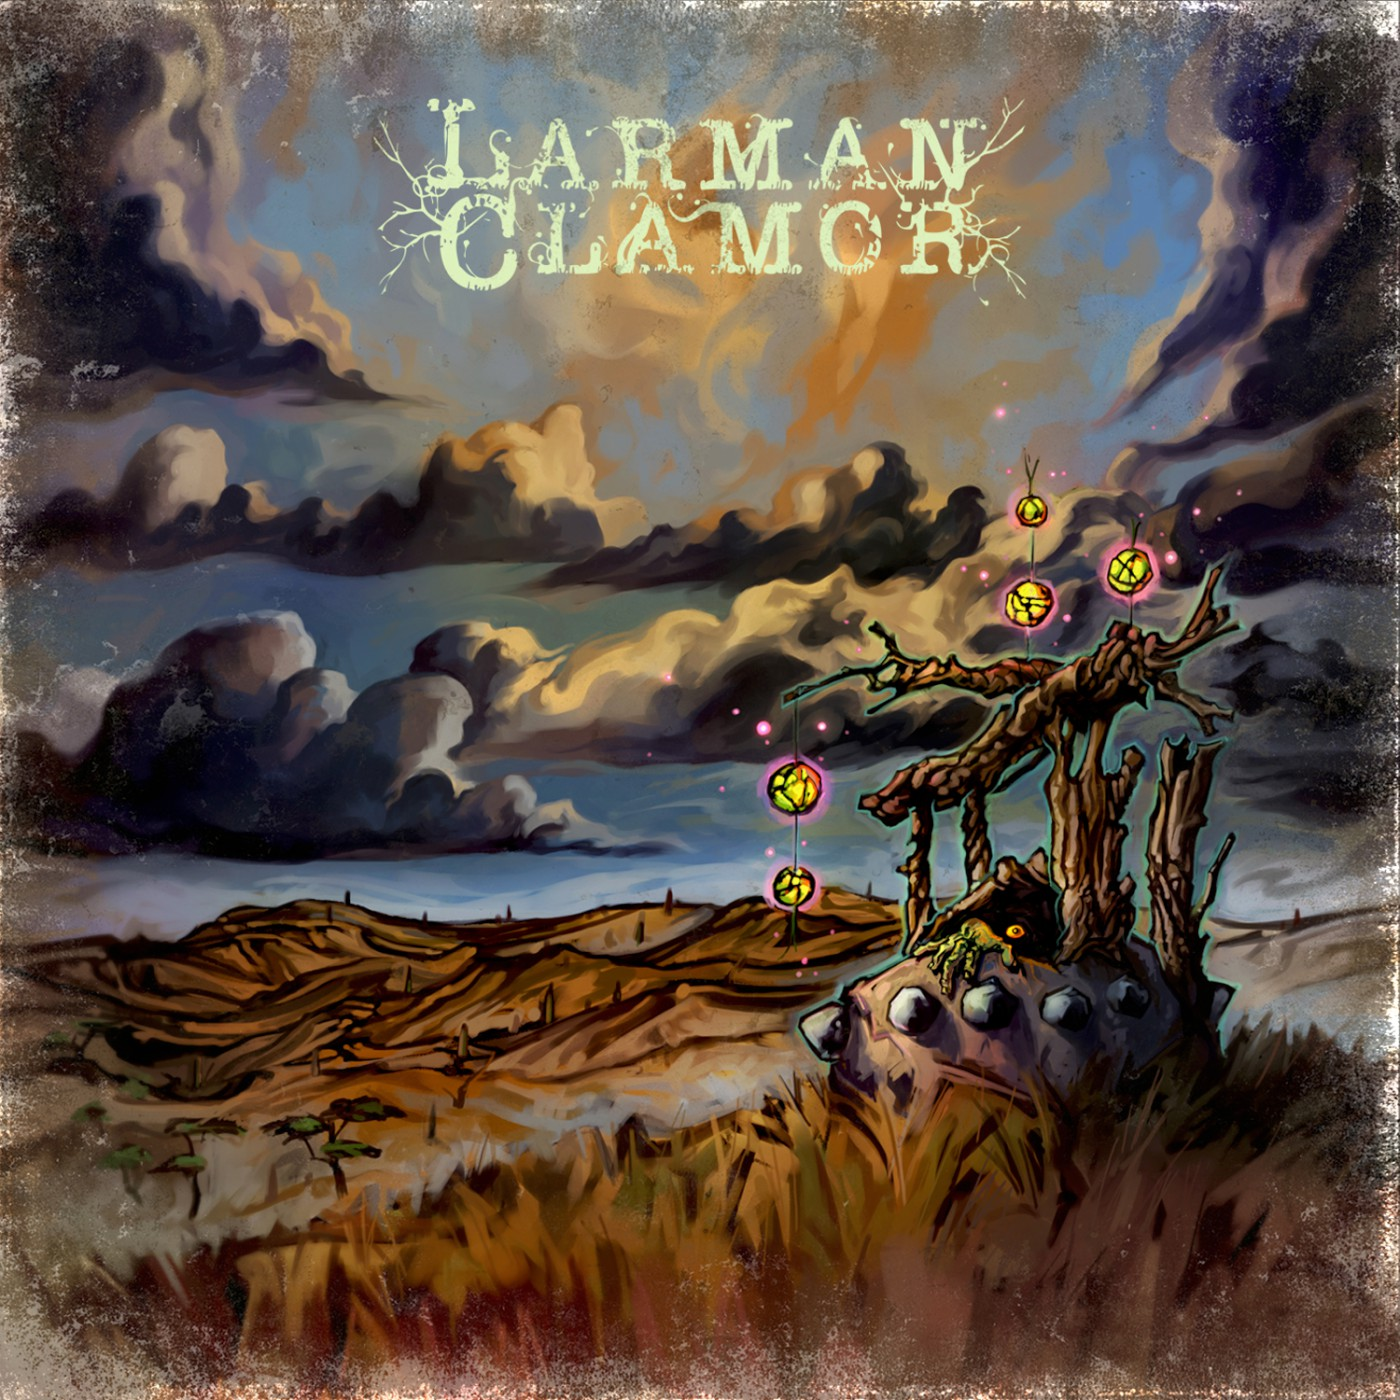 larman clamor the heathland tales